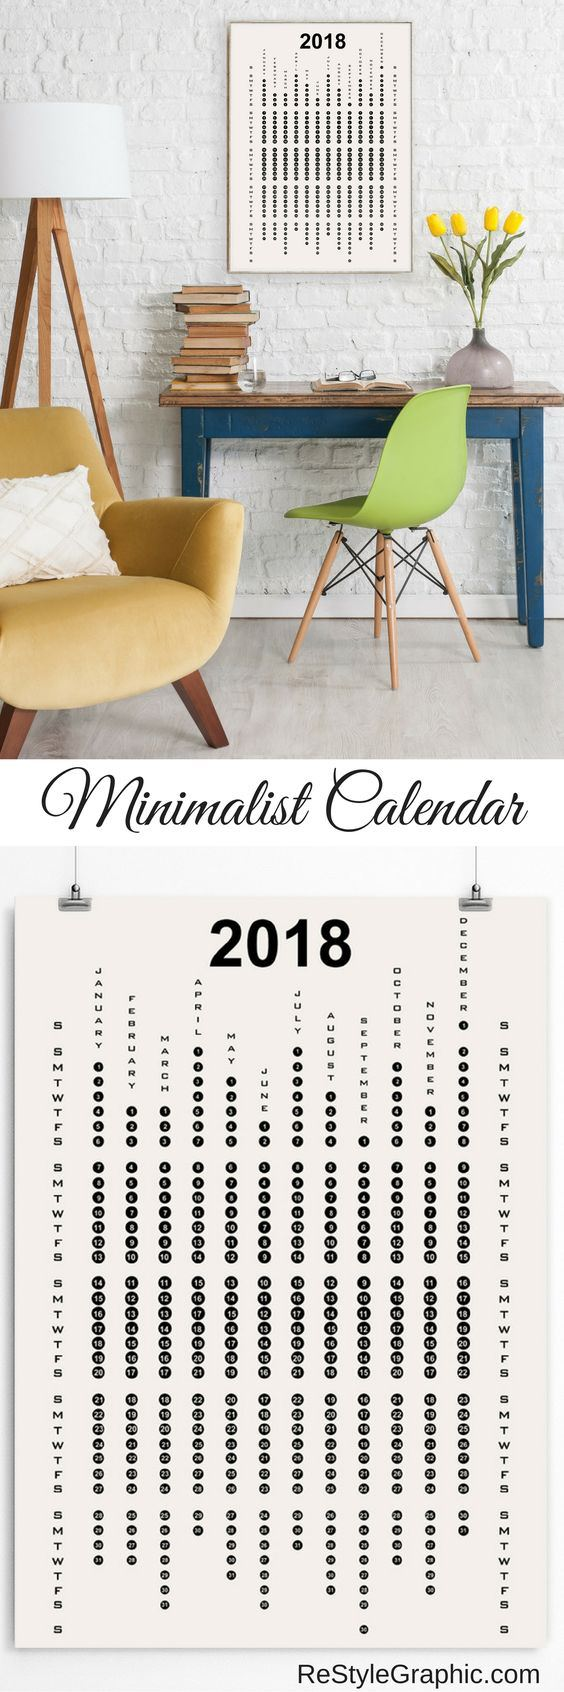 This poster-style calendar is available in black on white and white on black. The months are arranged vertically and grouped into weeks. If you prefer a minimalist look for your home, this calendar will be a great addition to the decor.